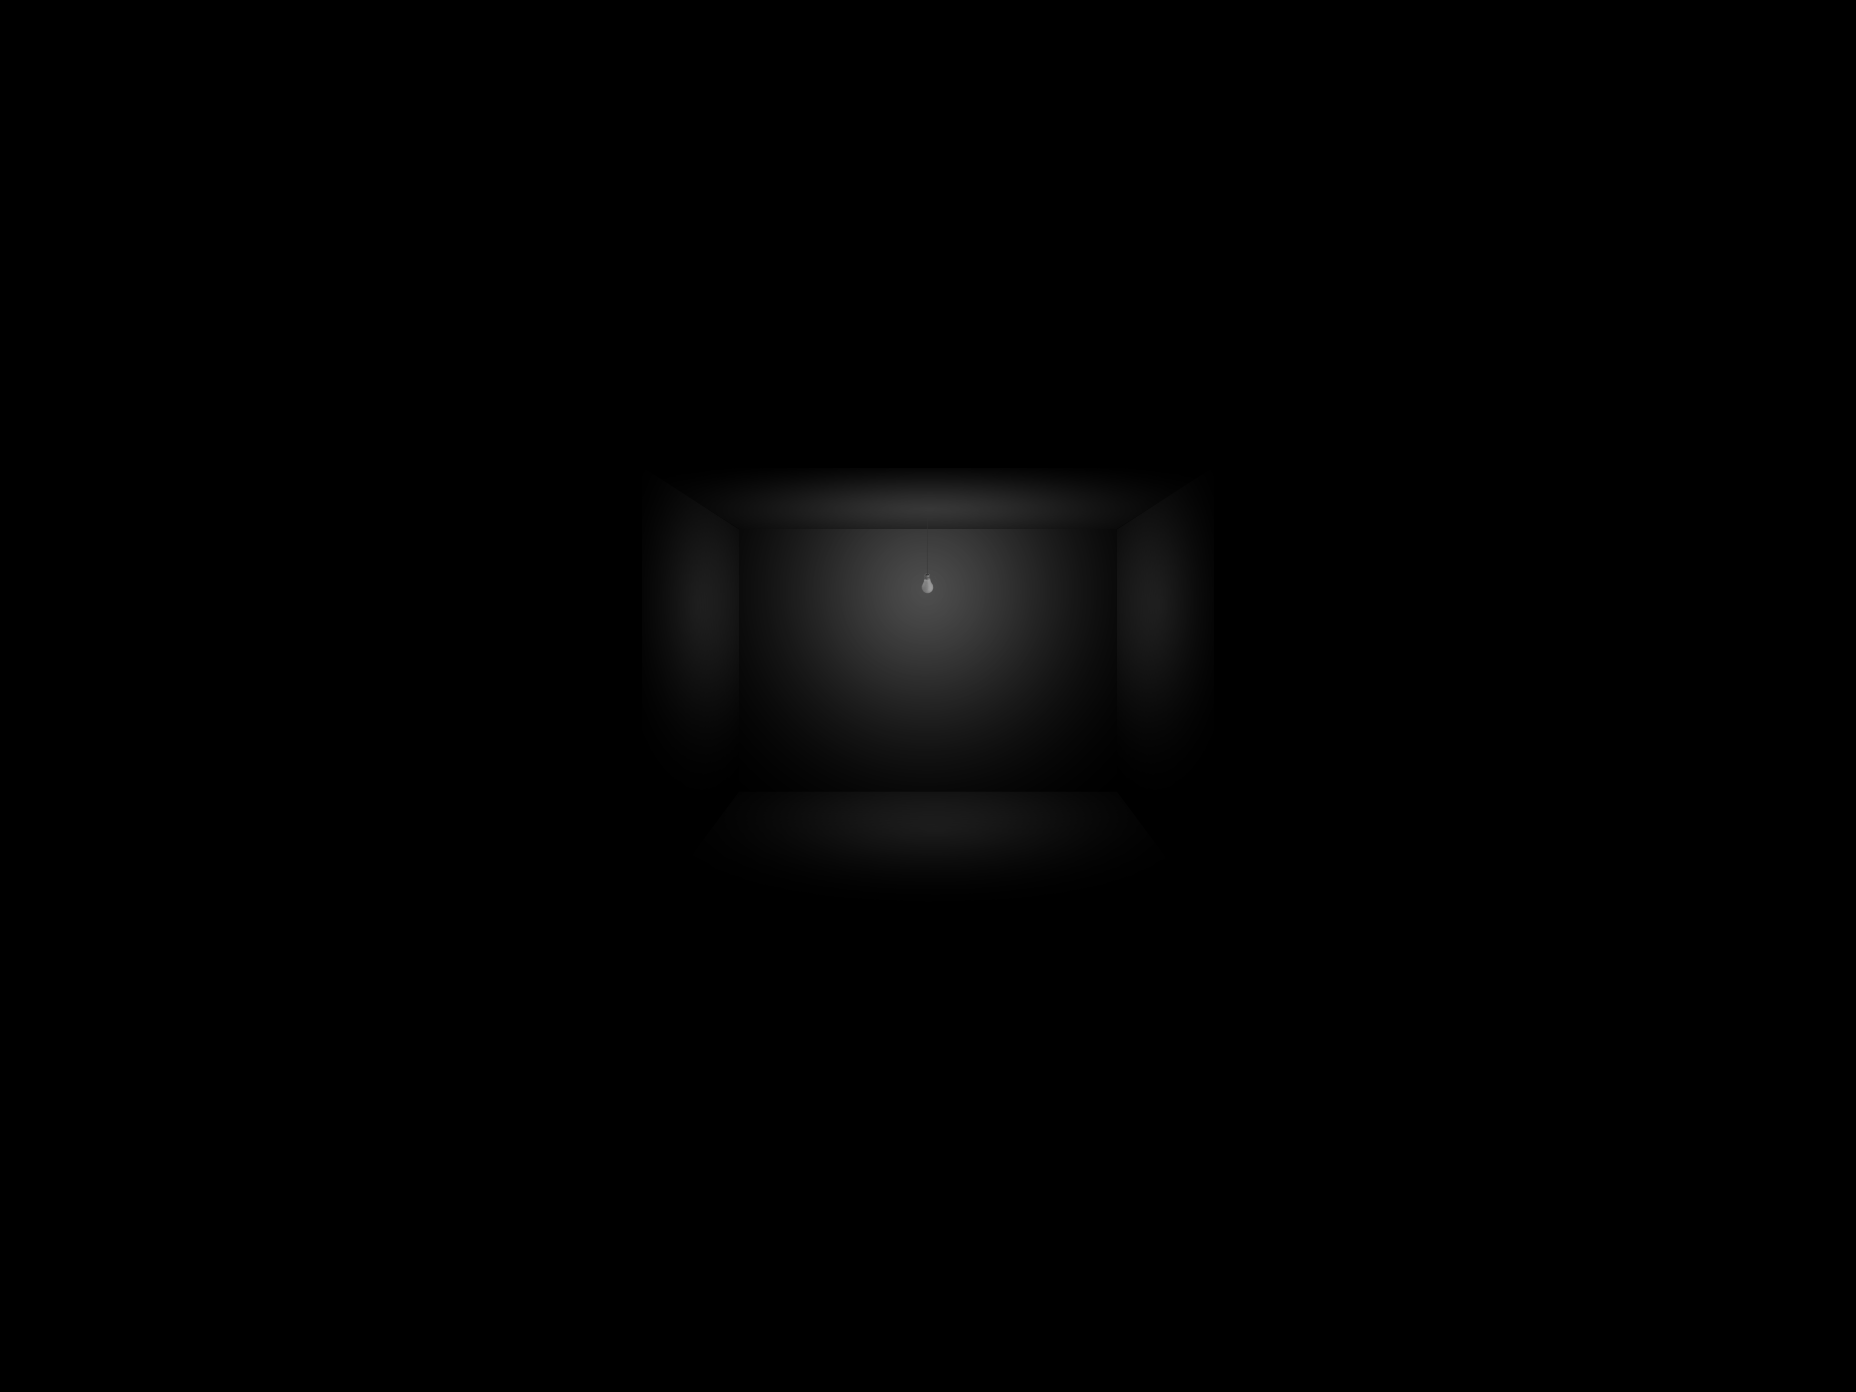 Dark Room Wallpaper 1856x1392 Dark Room By Maximumbob 1856x1392